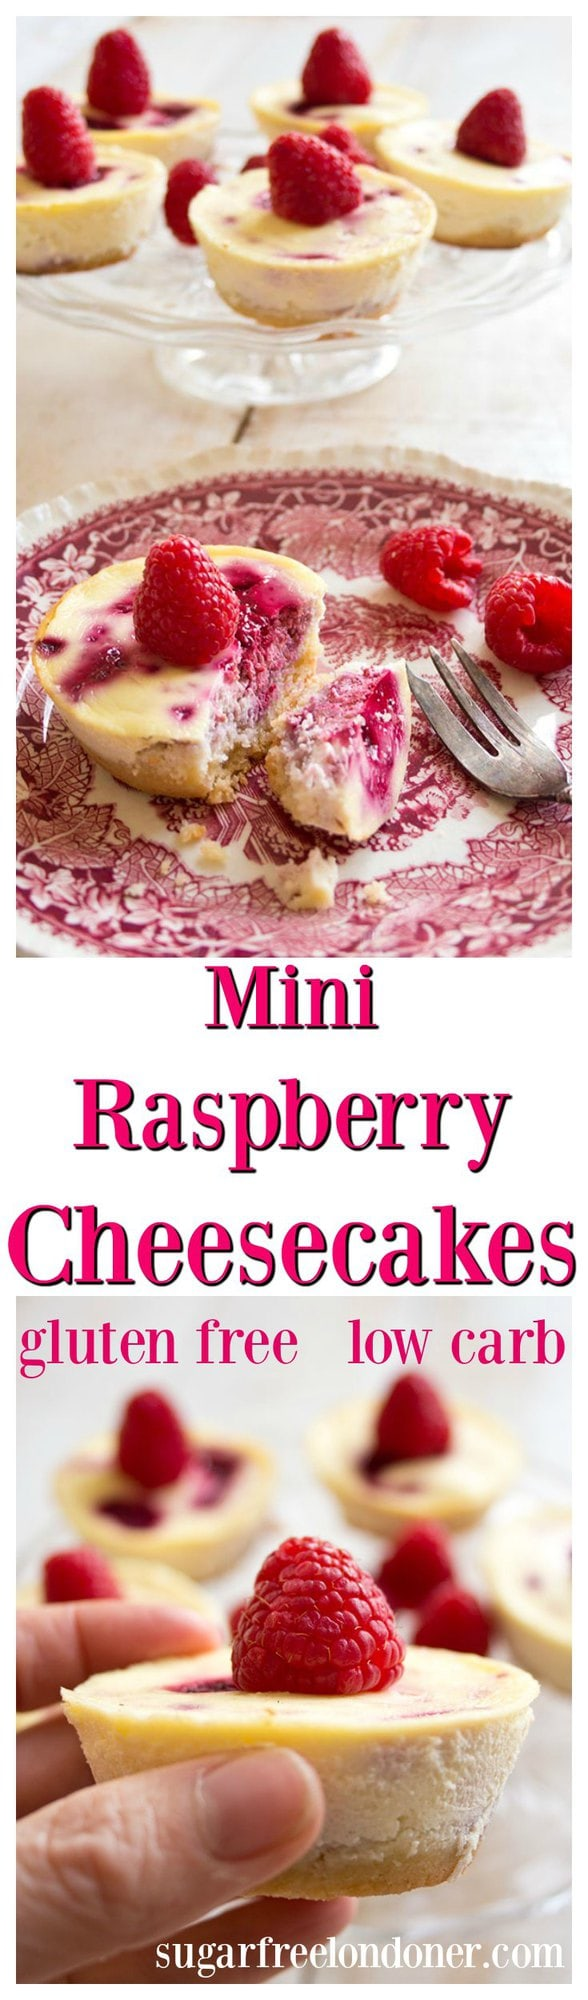 These creamy, fruity individual low carb raspberry cheesecakes are a perfectly guilt free indulgence. #lowcarb #sugarfree #cheesecake